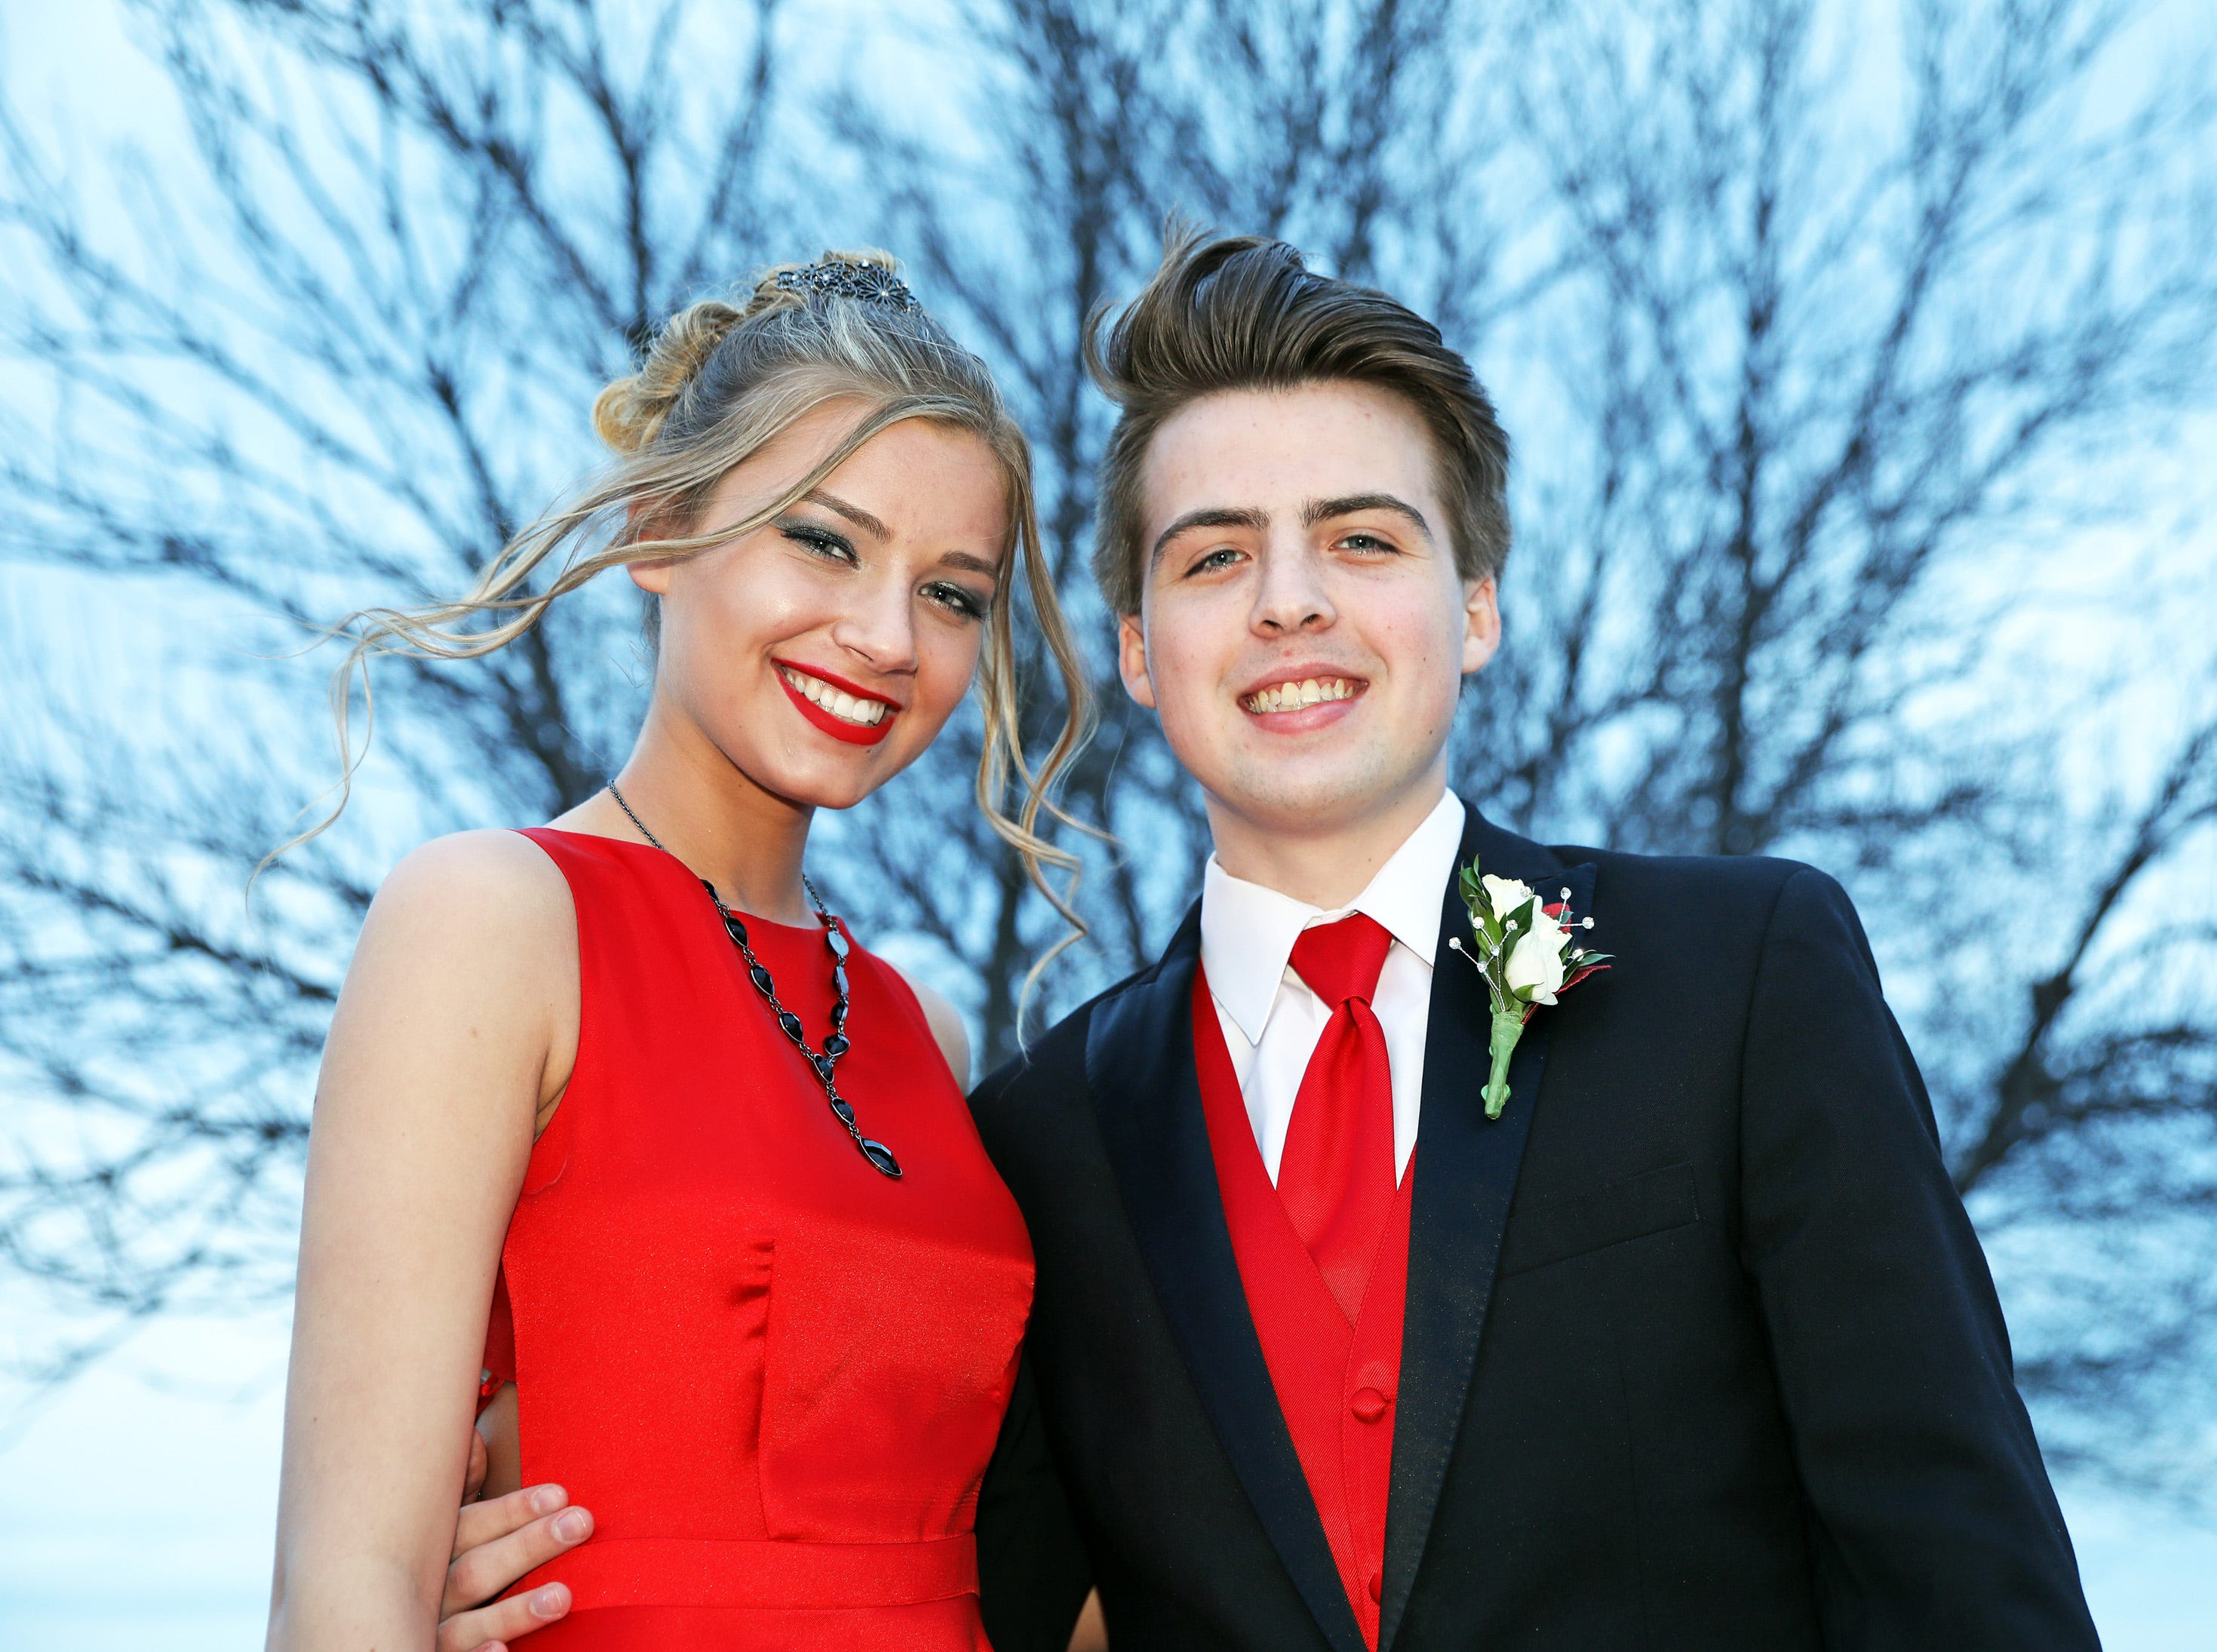 Junior Aleea Doerr and senior Jacob Best arrive at the Waukee High School Prom at the Ron Pearson Center in West Des Moines on Saturday, April 6, 2019. The theme for this year's prom was Moonlight and Roses and then followed by a tropical-themed Waukiki After Prom from 11 p.m. to 5 a.m.